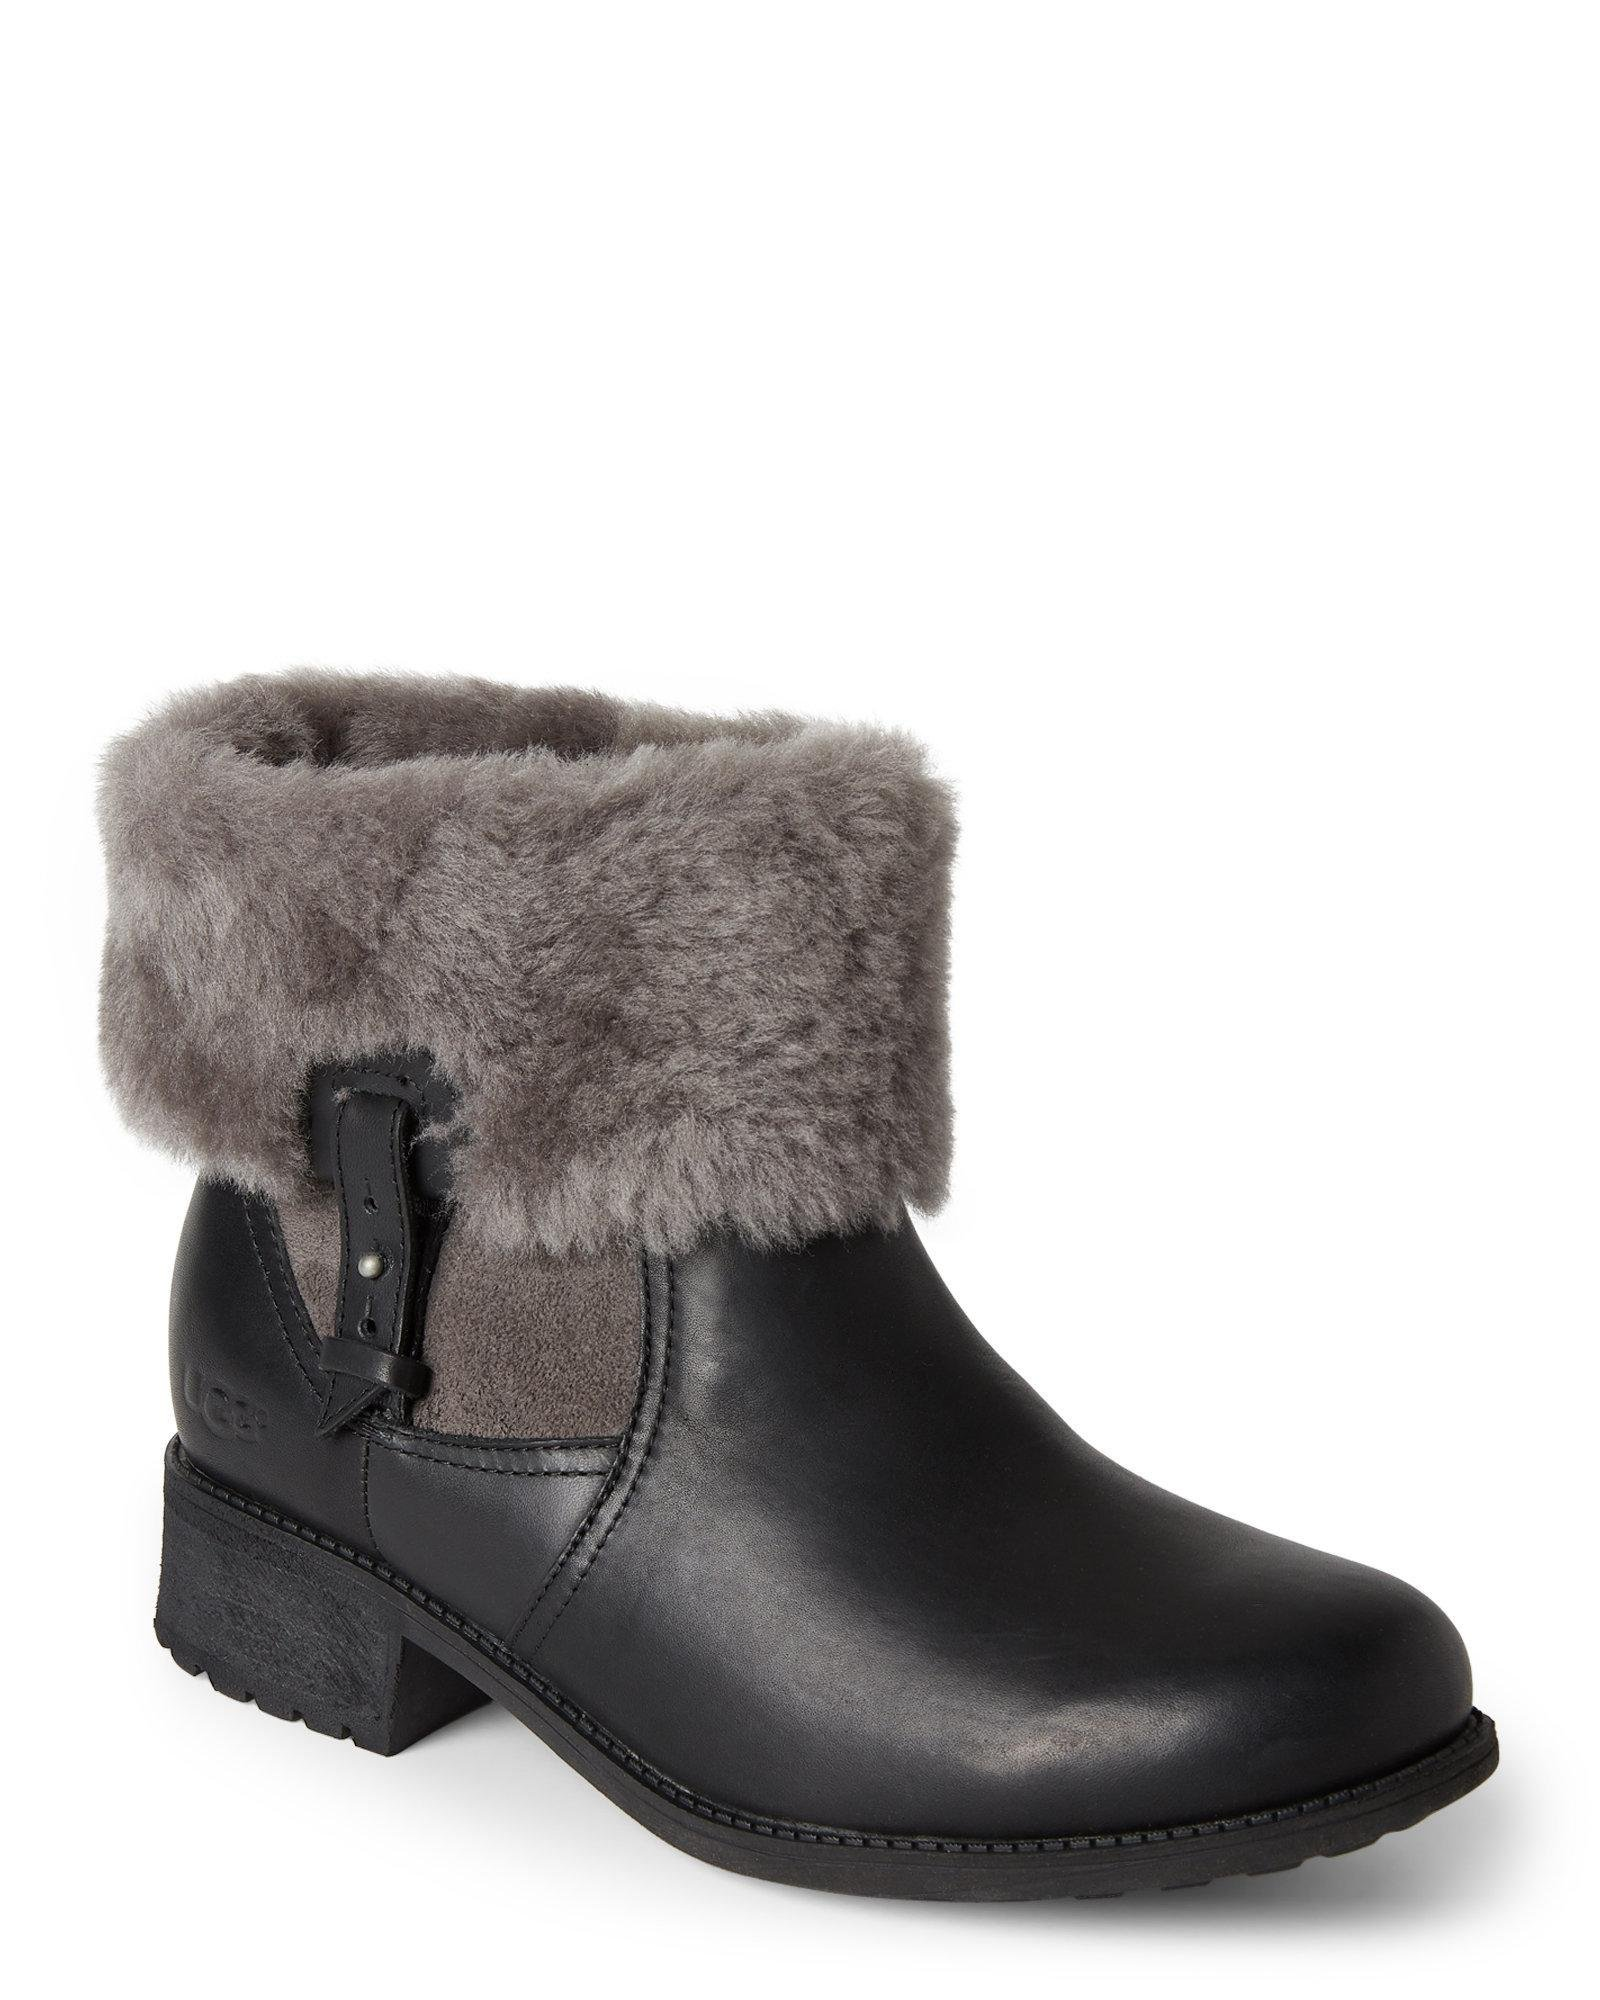 b5cef61f9af Lyst - UGG Black & Grey Chyler Water-Resistant Ankle Boots in Gray